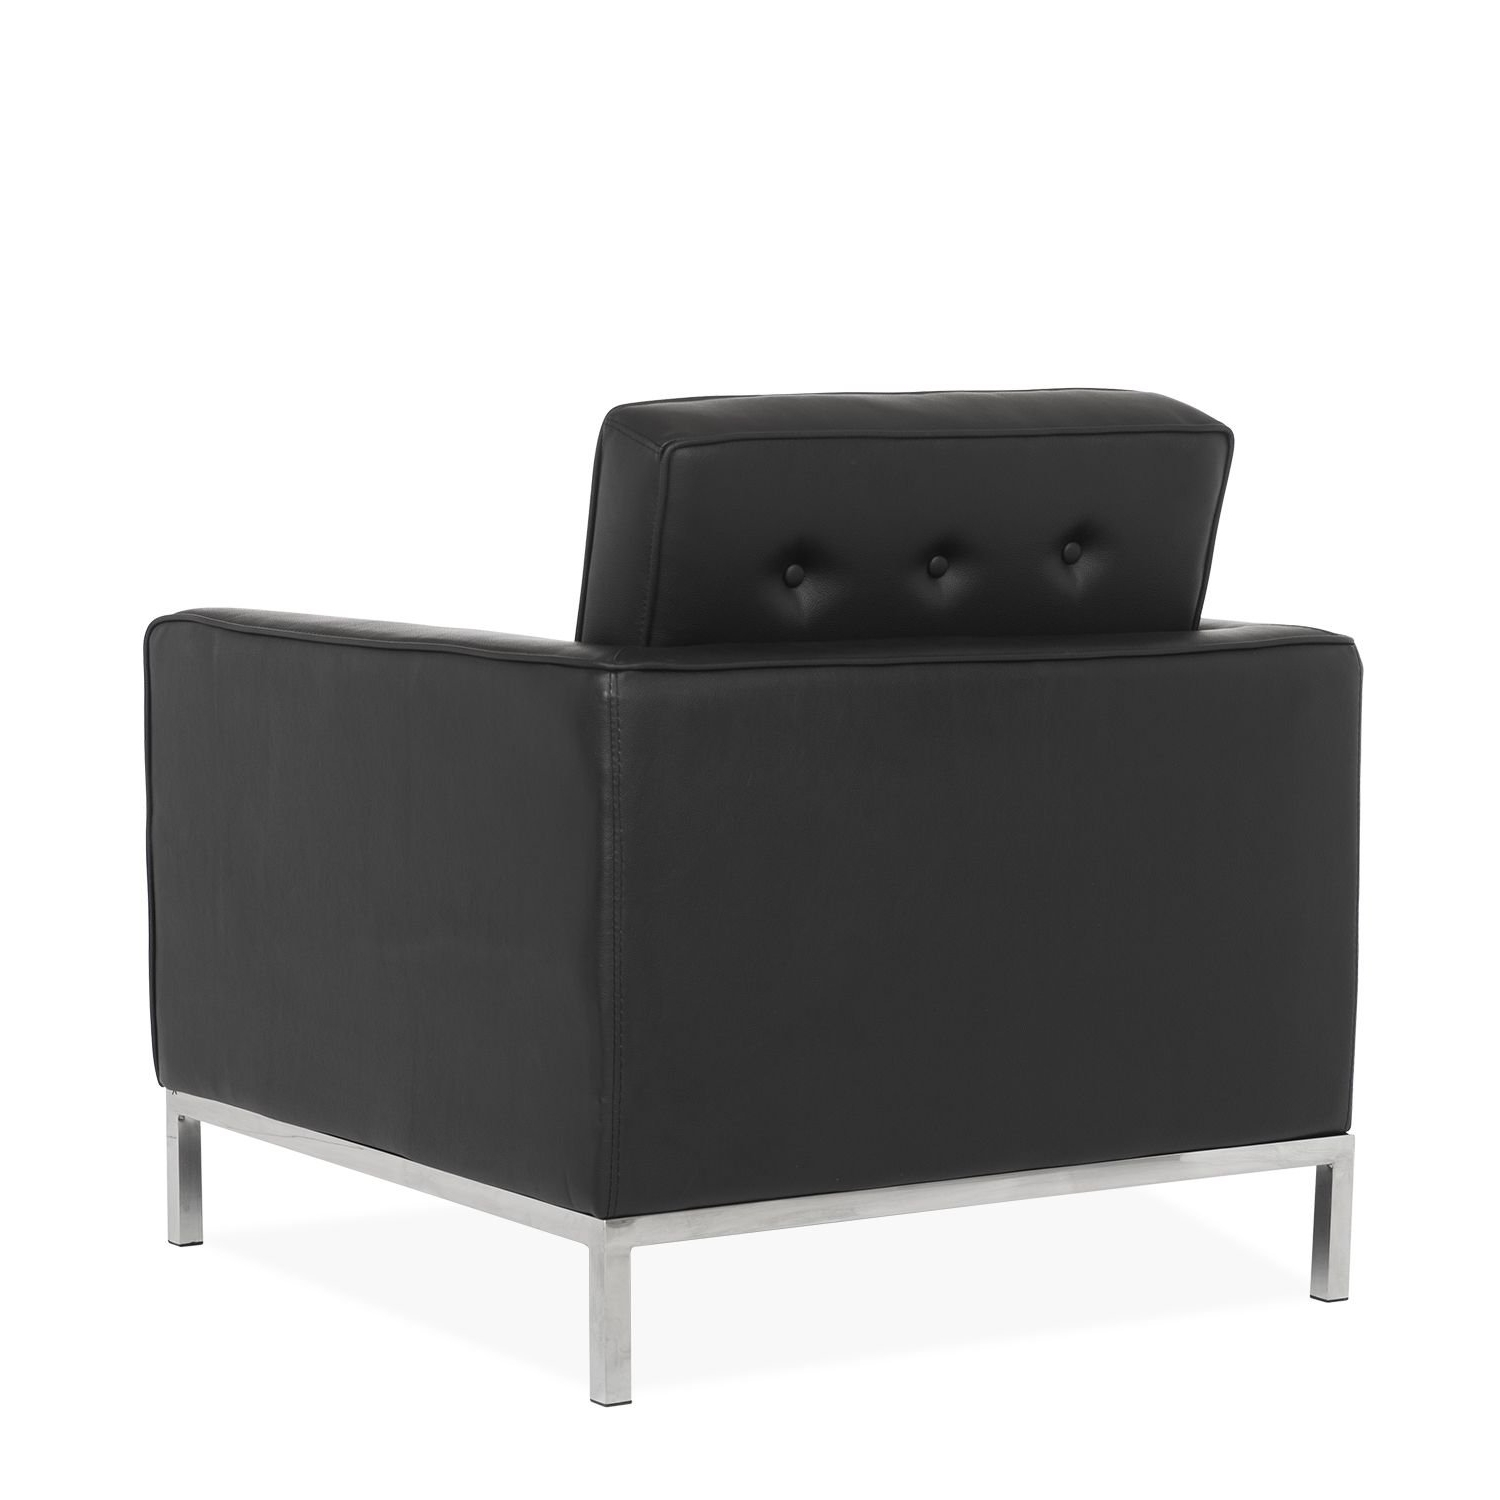 Newest Cheap Single Sofas Pertaining To Armchair : Sofa Chairs For Living Room Chair Walmart Single Sofa (View 12 of 20)